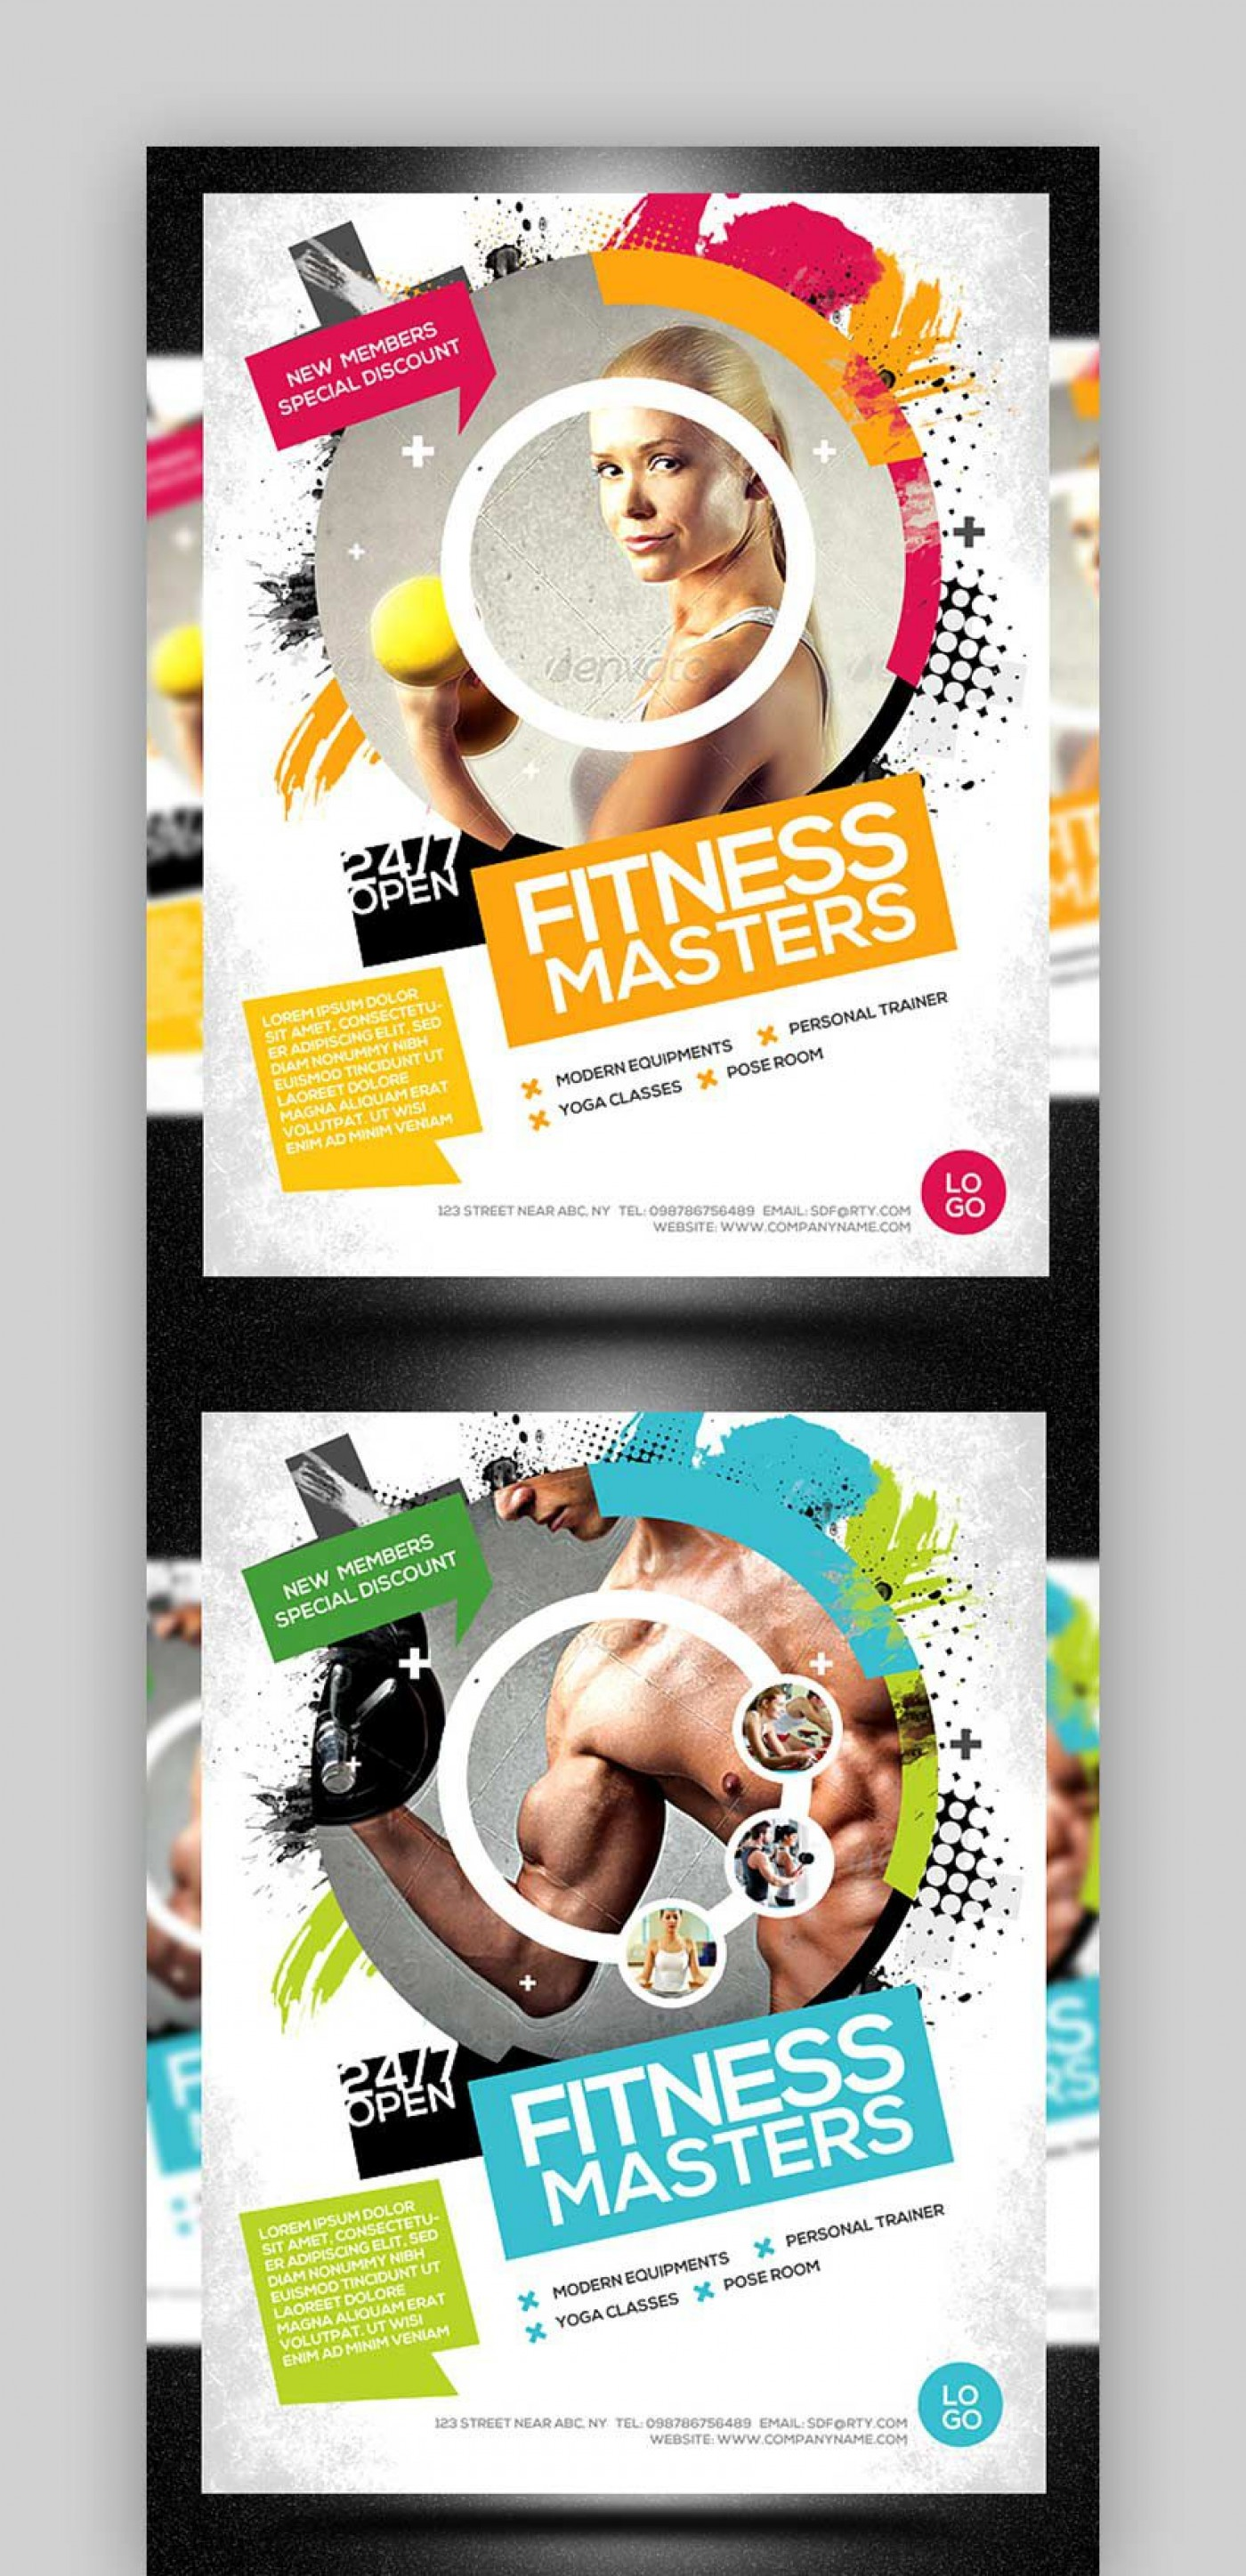 004 Stunning Adobe Photoshop Psd Poster Template Free Download High Resolution 1400